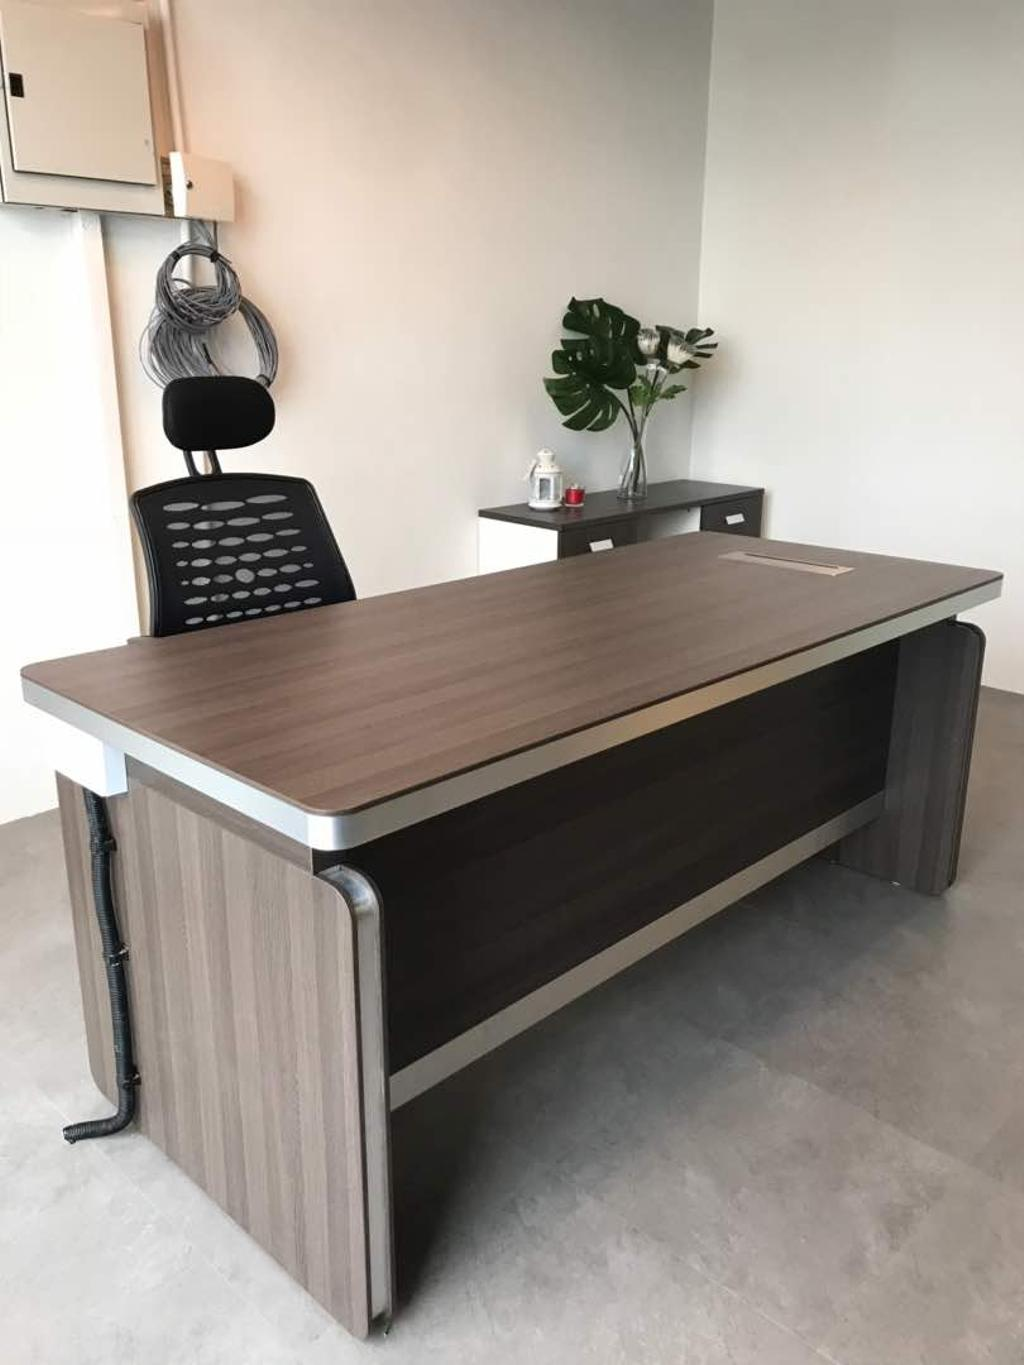 We Pays Office, Mahkota Parade, Commercial, Interior Designer, Trivia Group Sdn. Bhd., Modern, Contemporary, Coffee Table, Furniture, Table